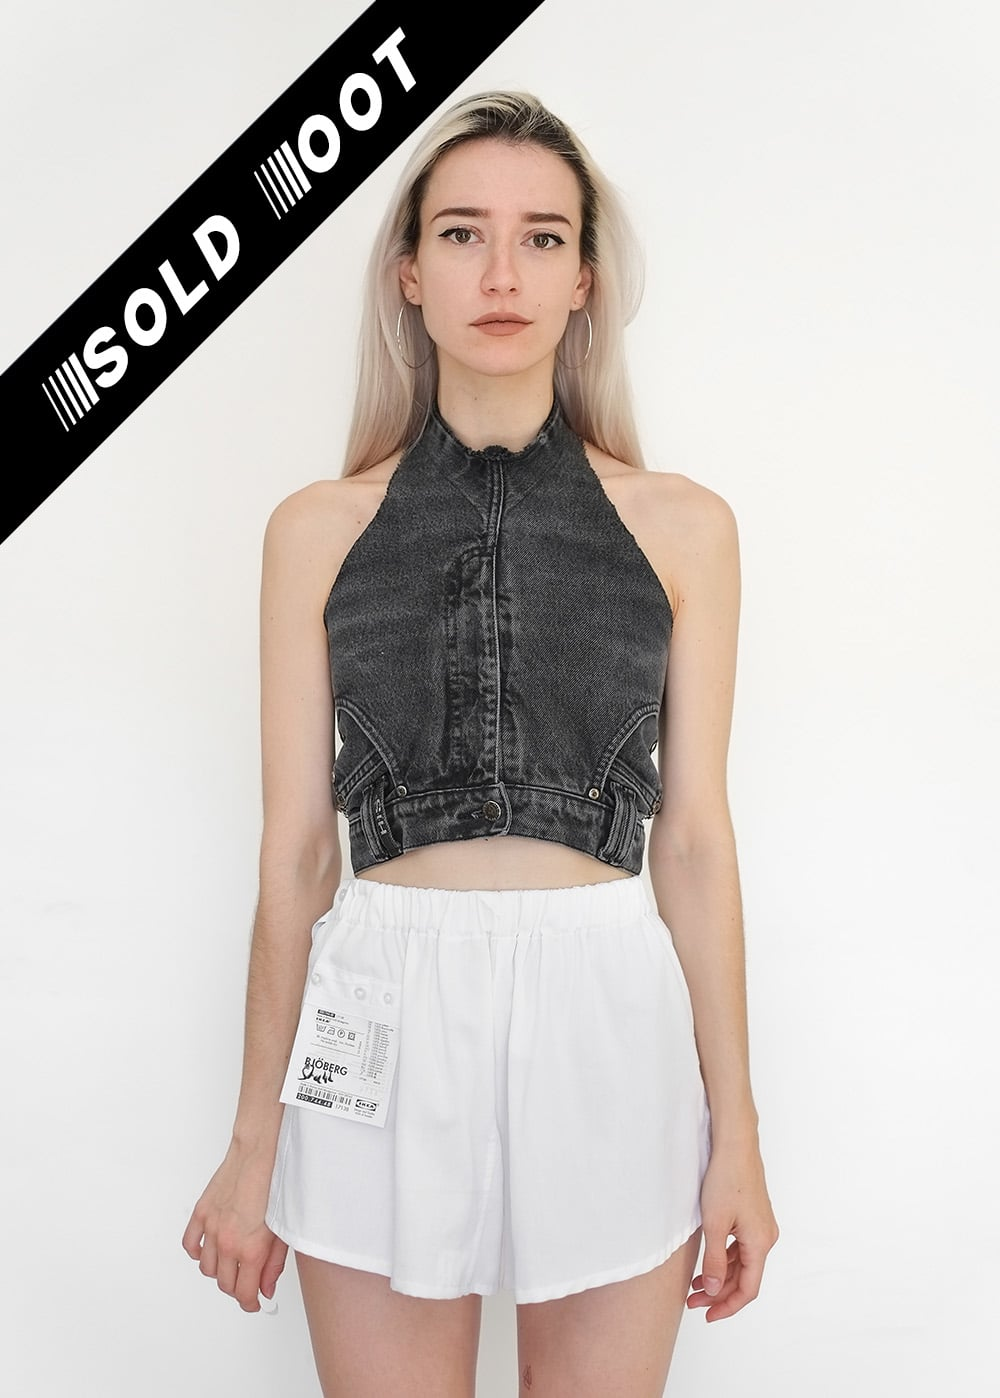 100% Upcycled Denim Chain Top 370